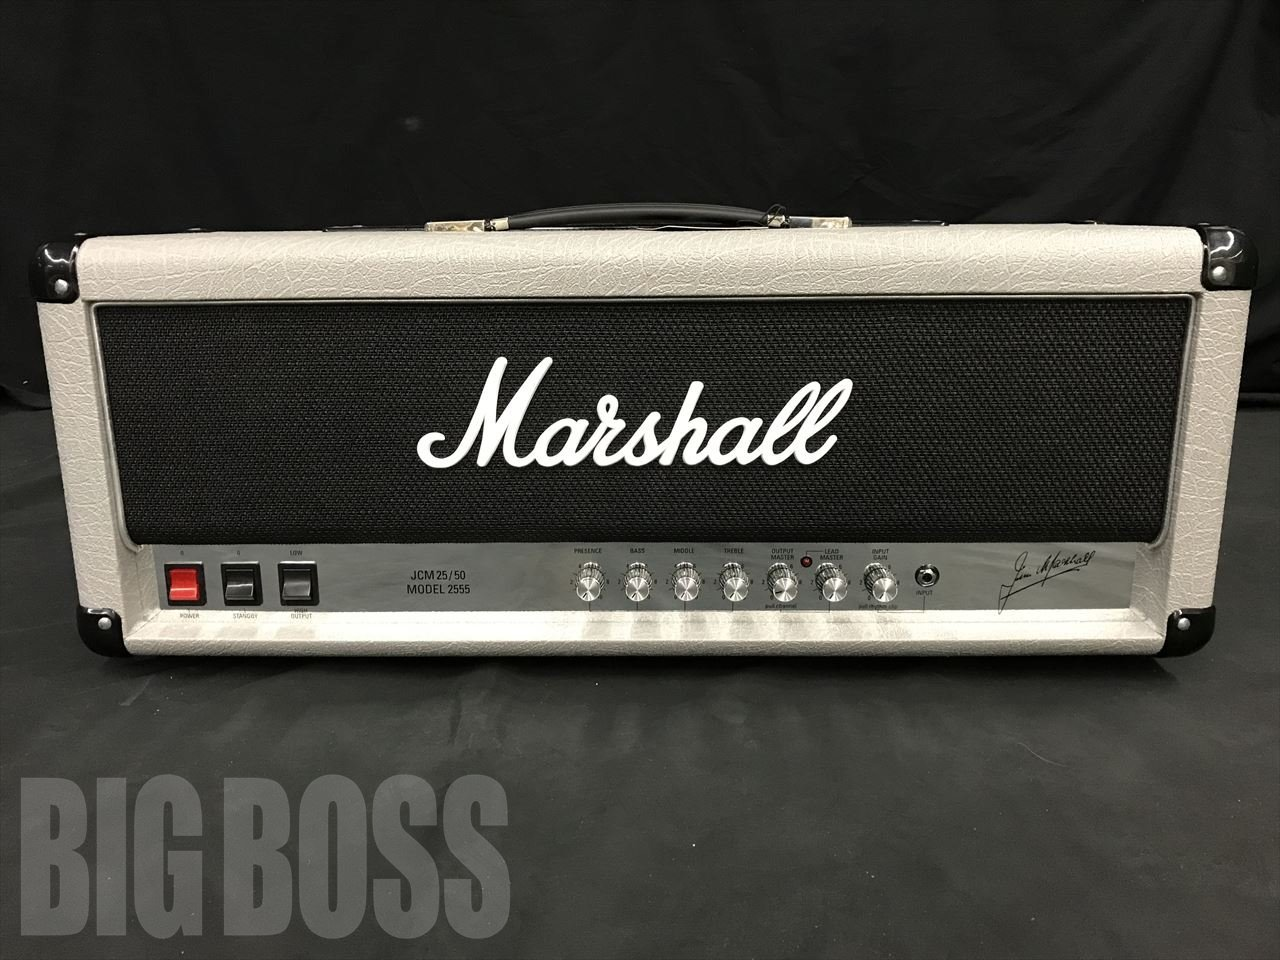 【即納可能/中古品】Marshall(マーシャル) 2555X / Silver Jubilee RE-ISSUE 駅前店